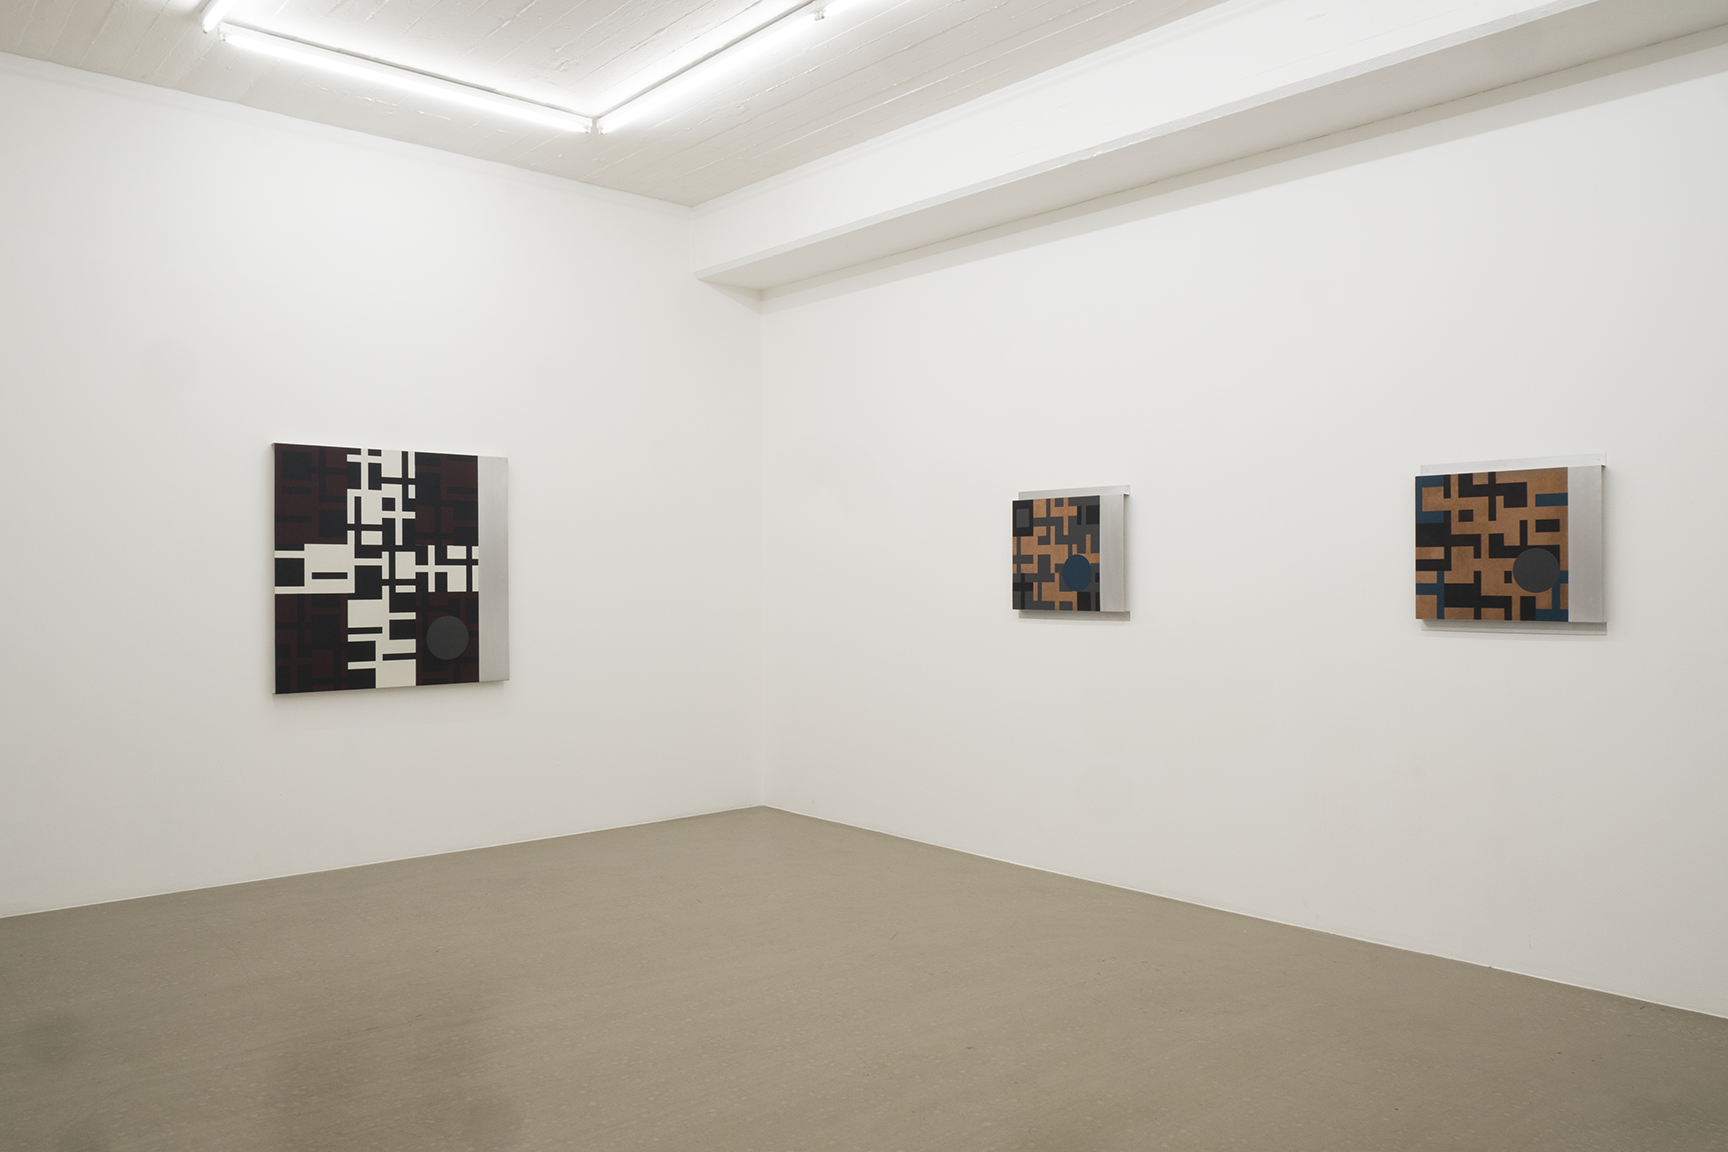 Olle Borg - exhibition view, room 2b